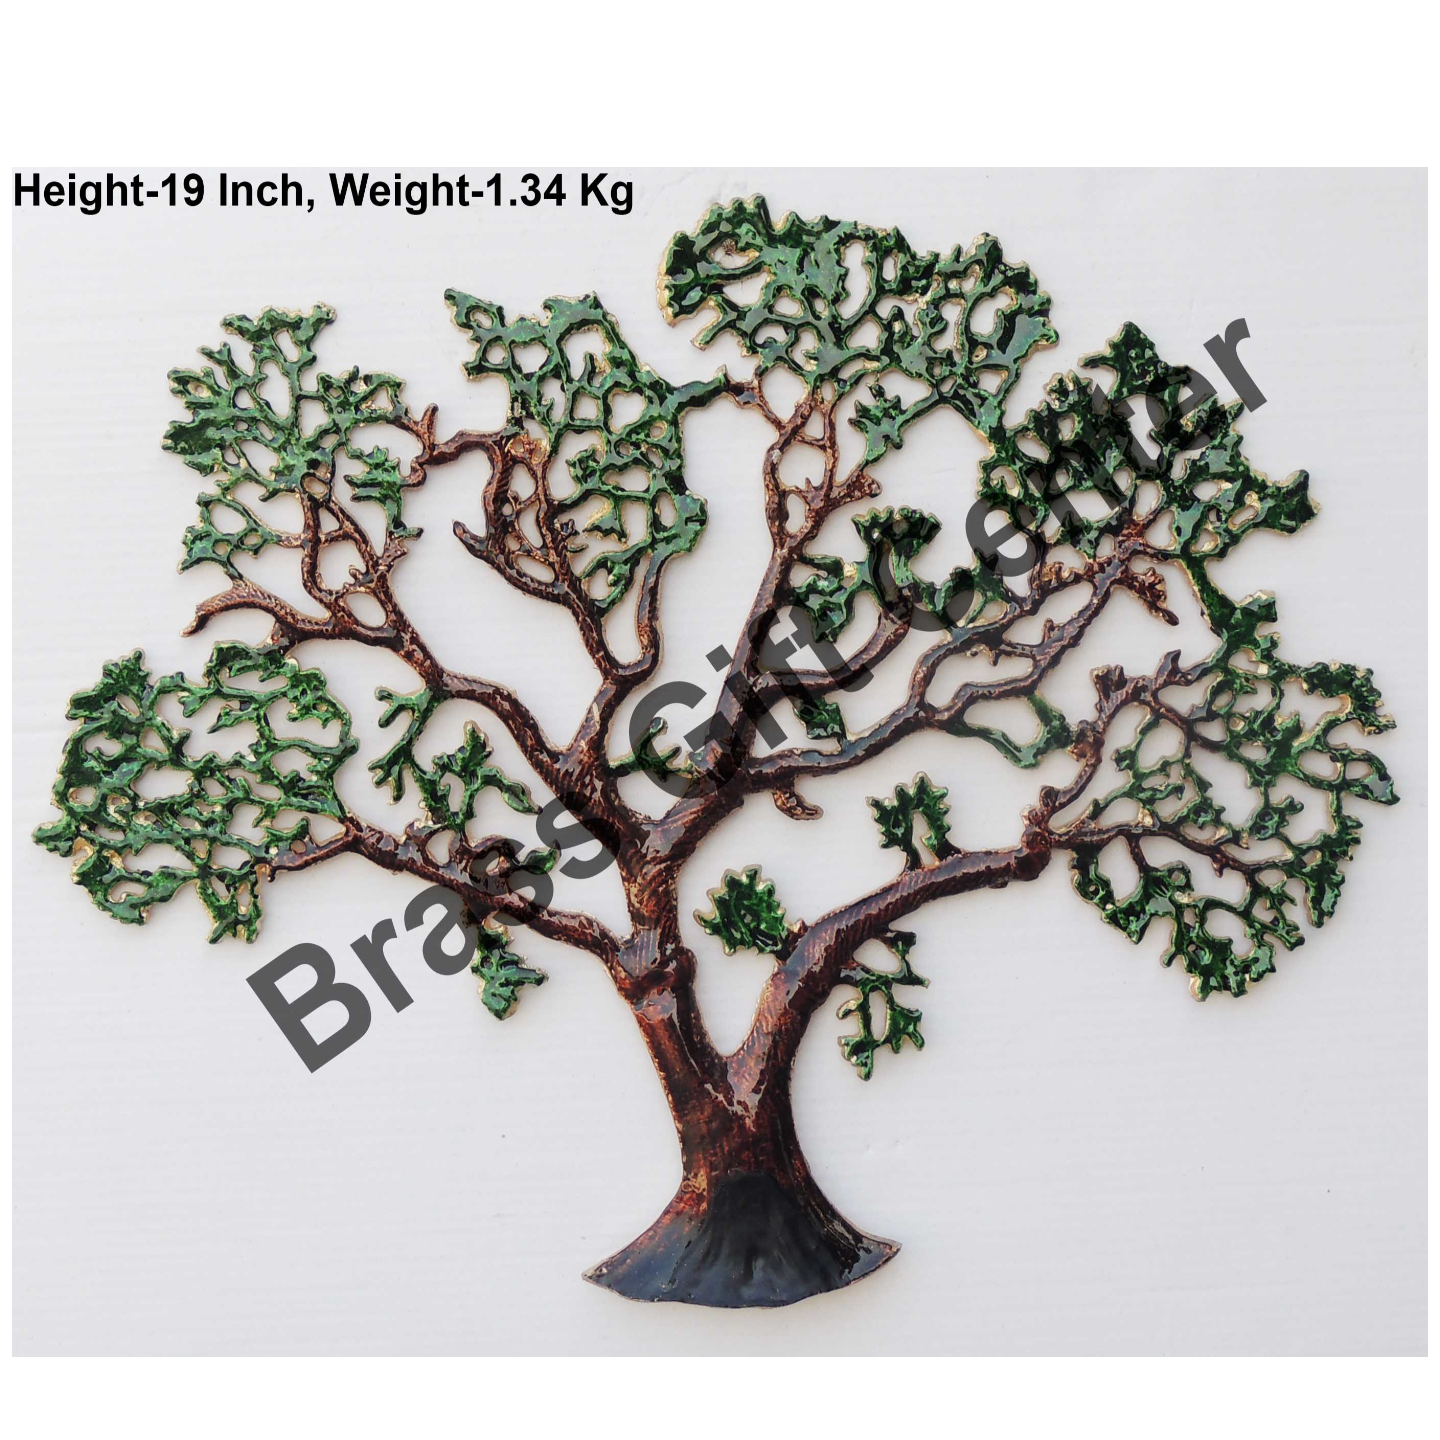 Wall Decorative Aluminium Tree - 24.2 Inch  Z123 E